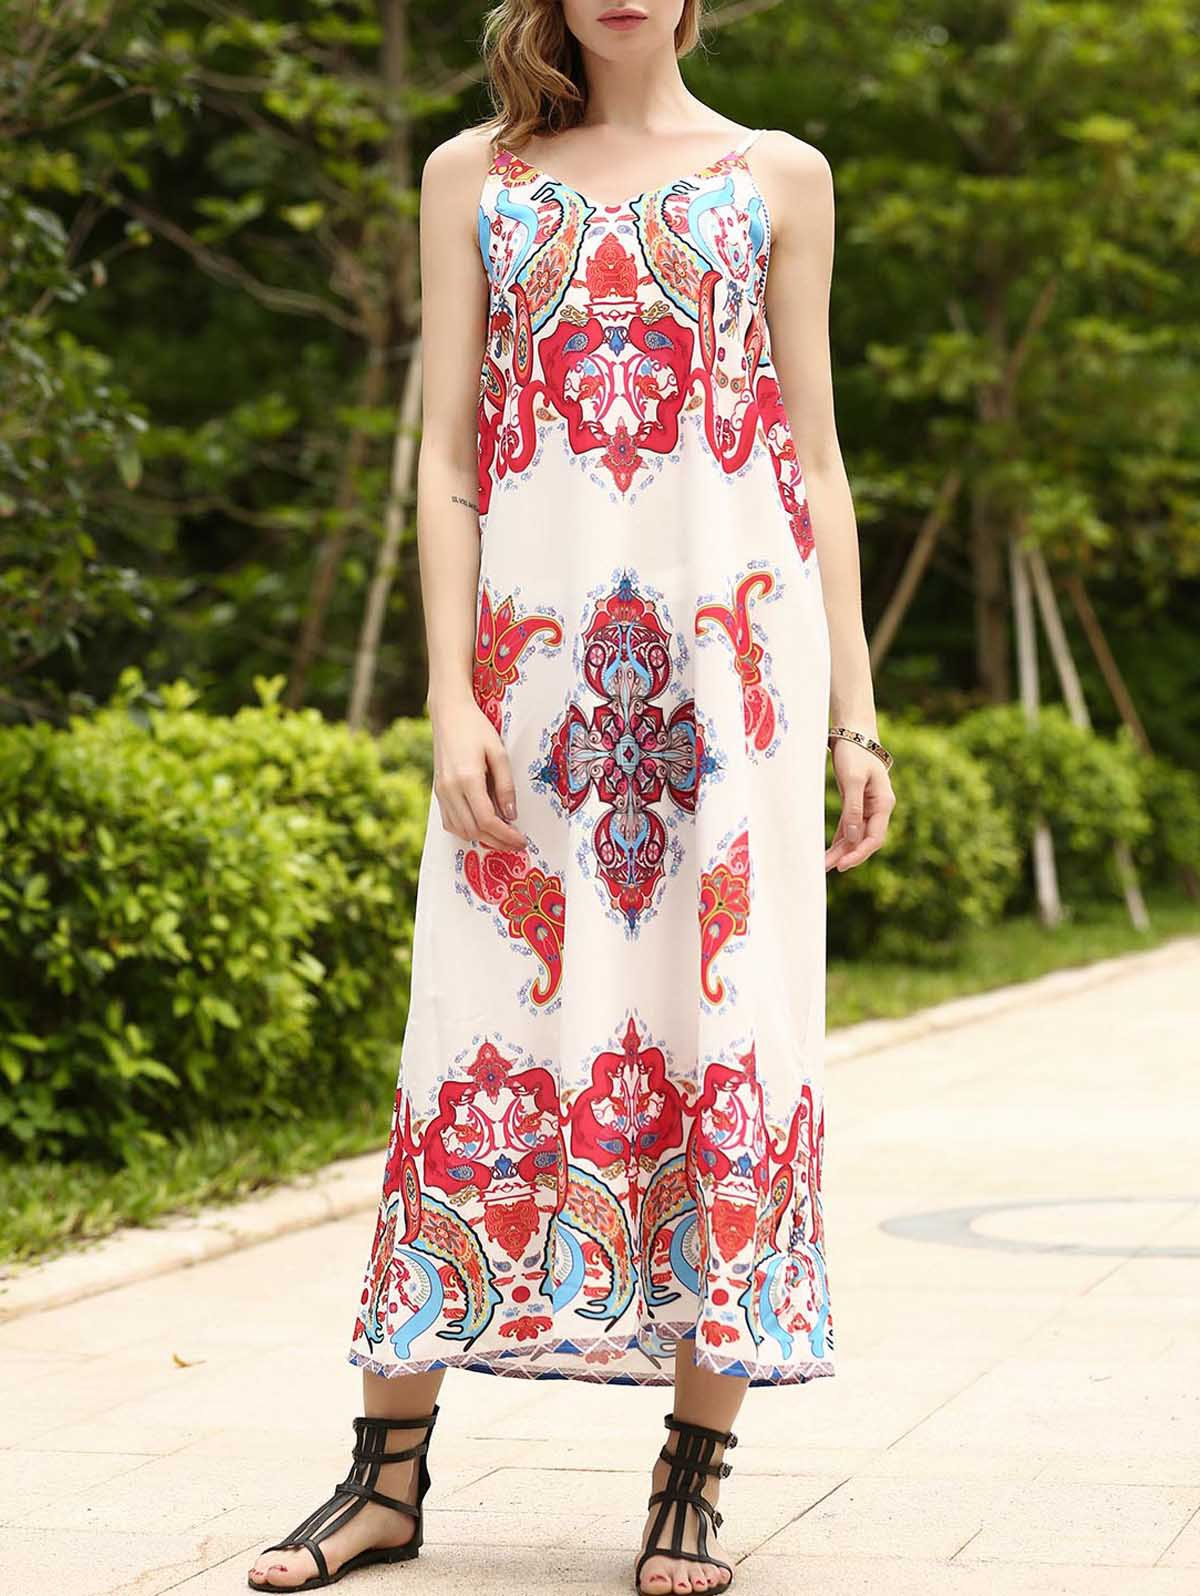 Bohemian Spaghetti Strap Loose-Fitting Printed Women's Dress - COLORMIX S